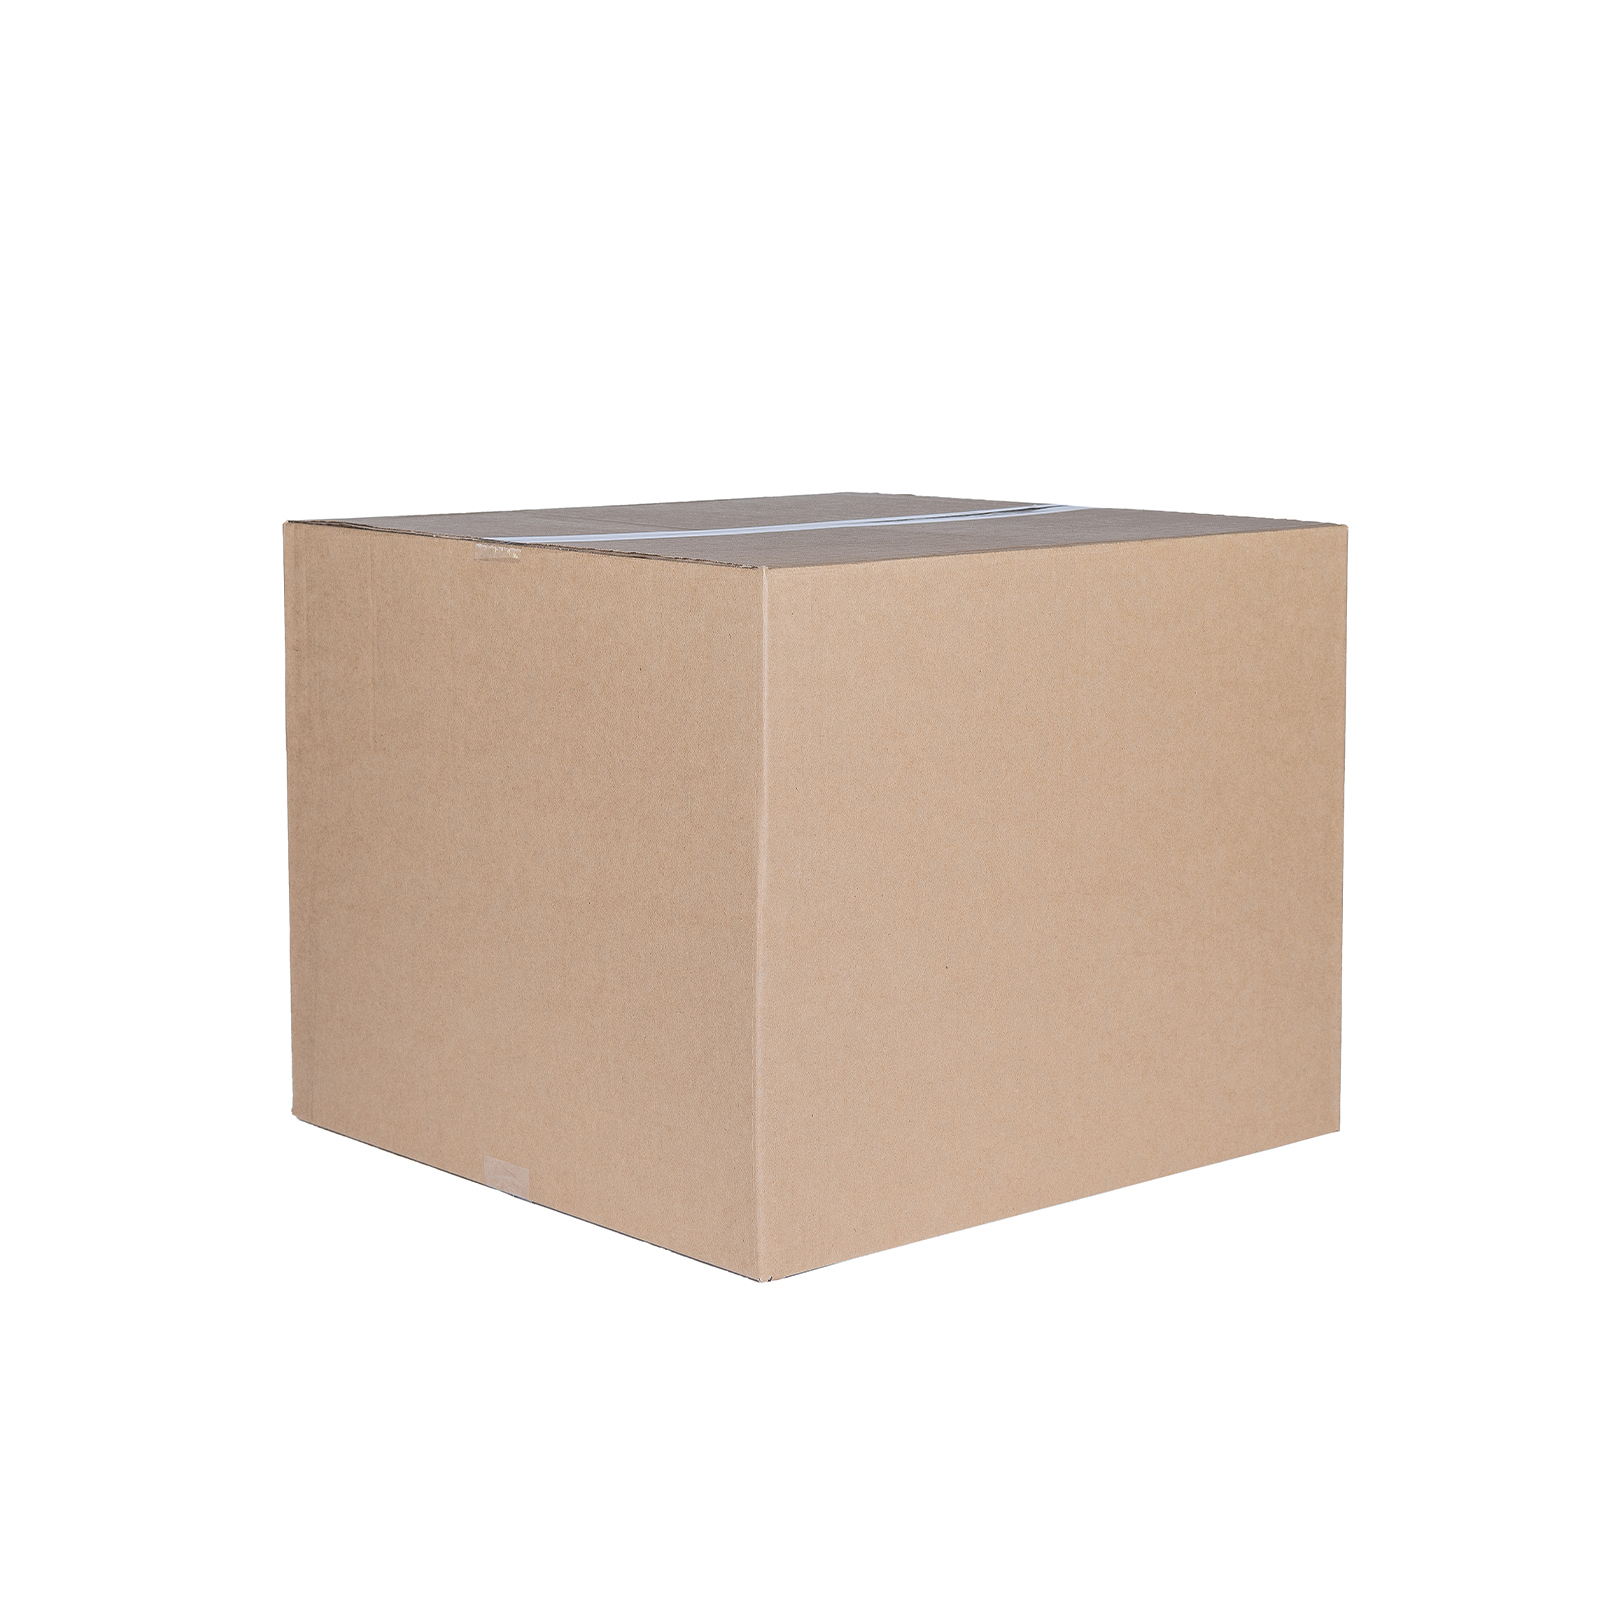 Wrap & Move 500 x 500 x 400mm Packing Box